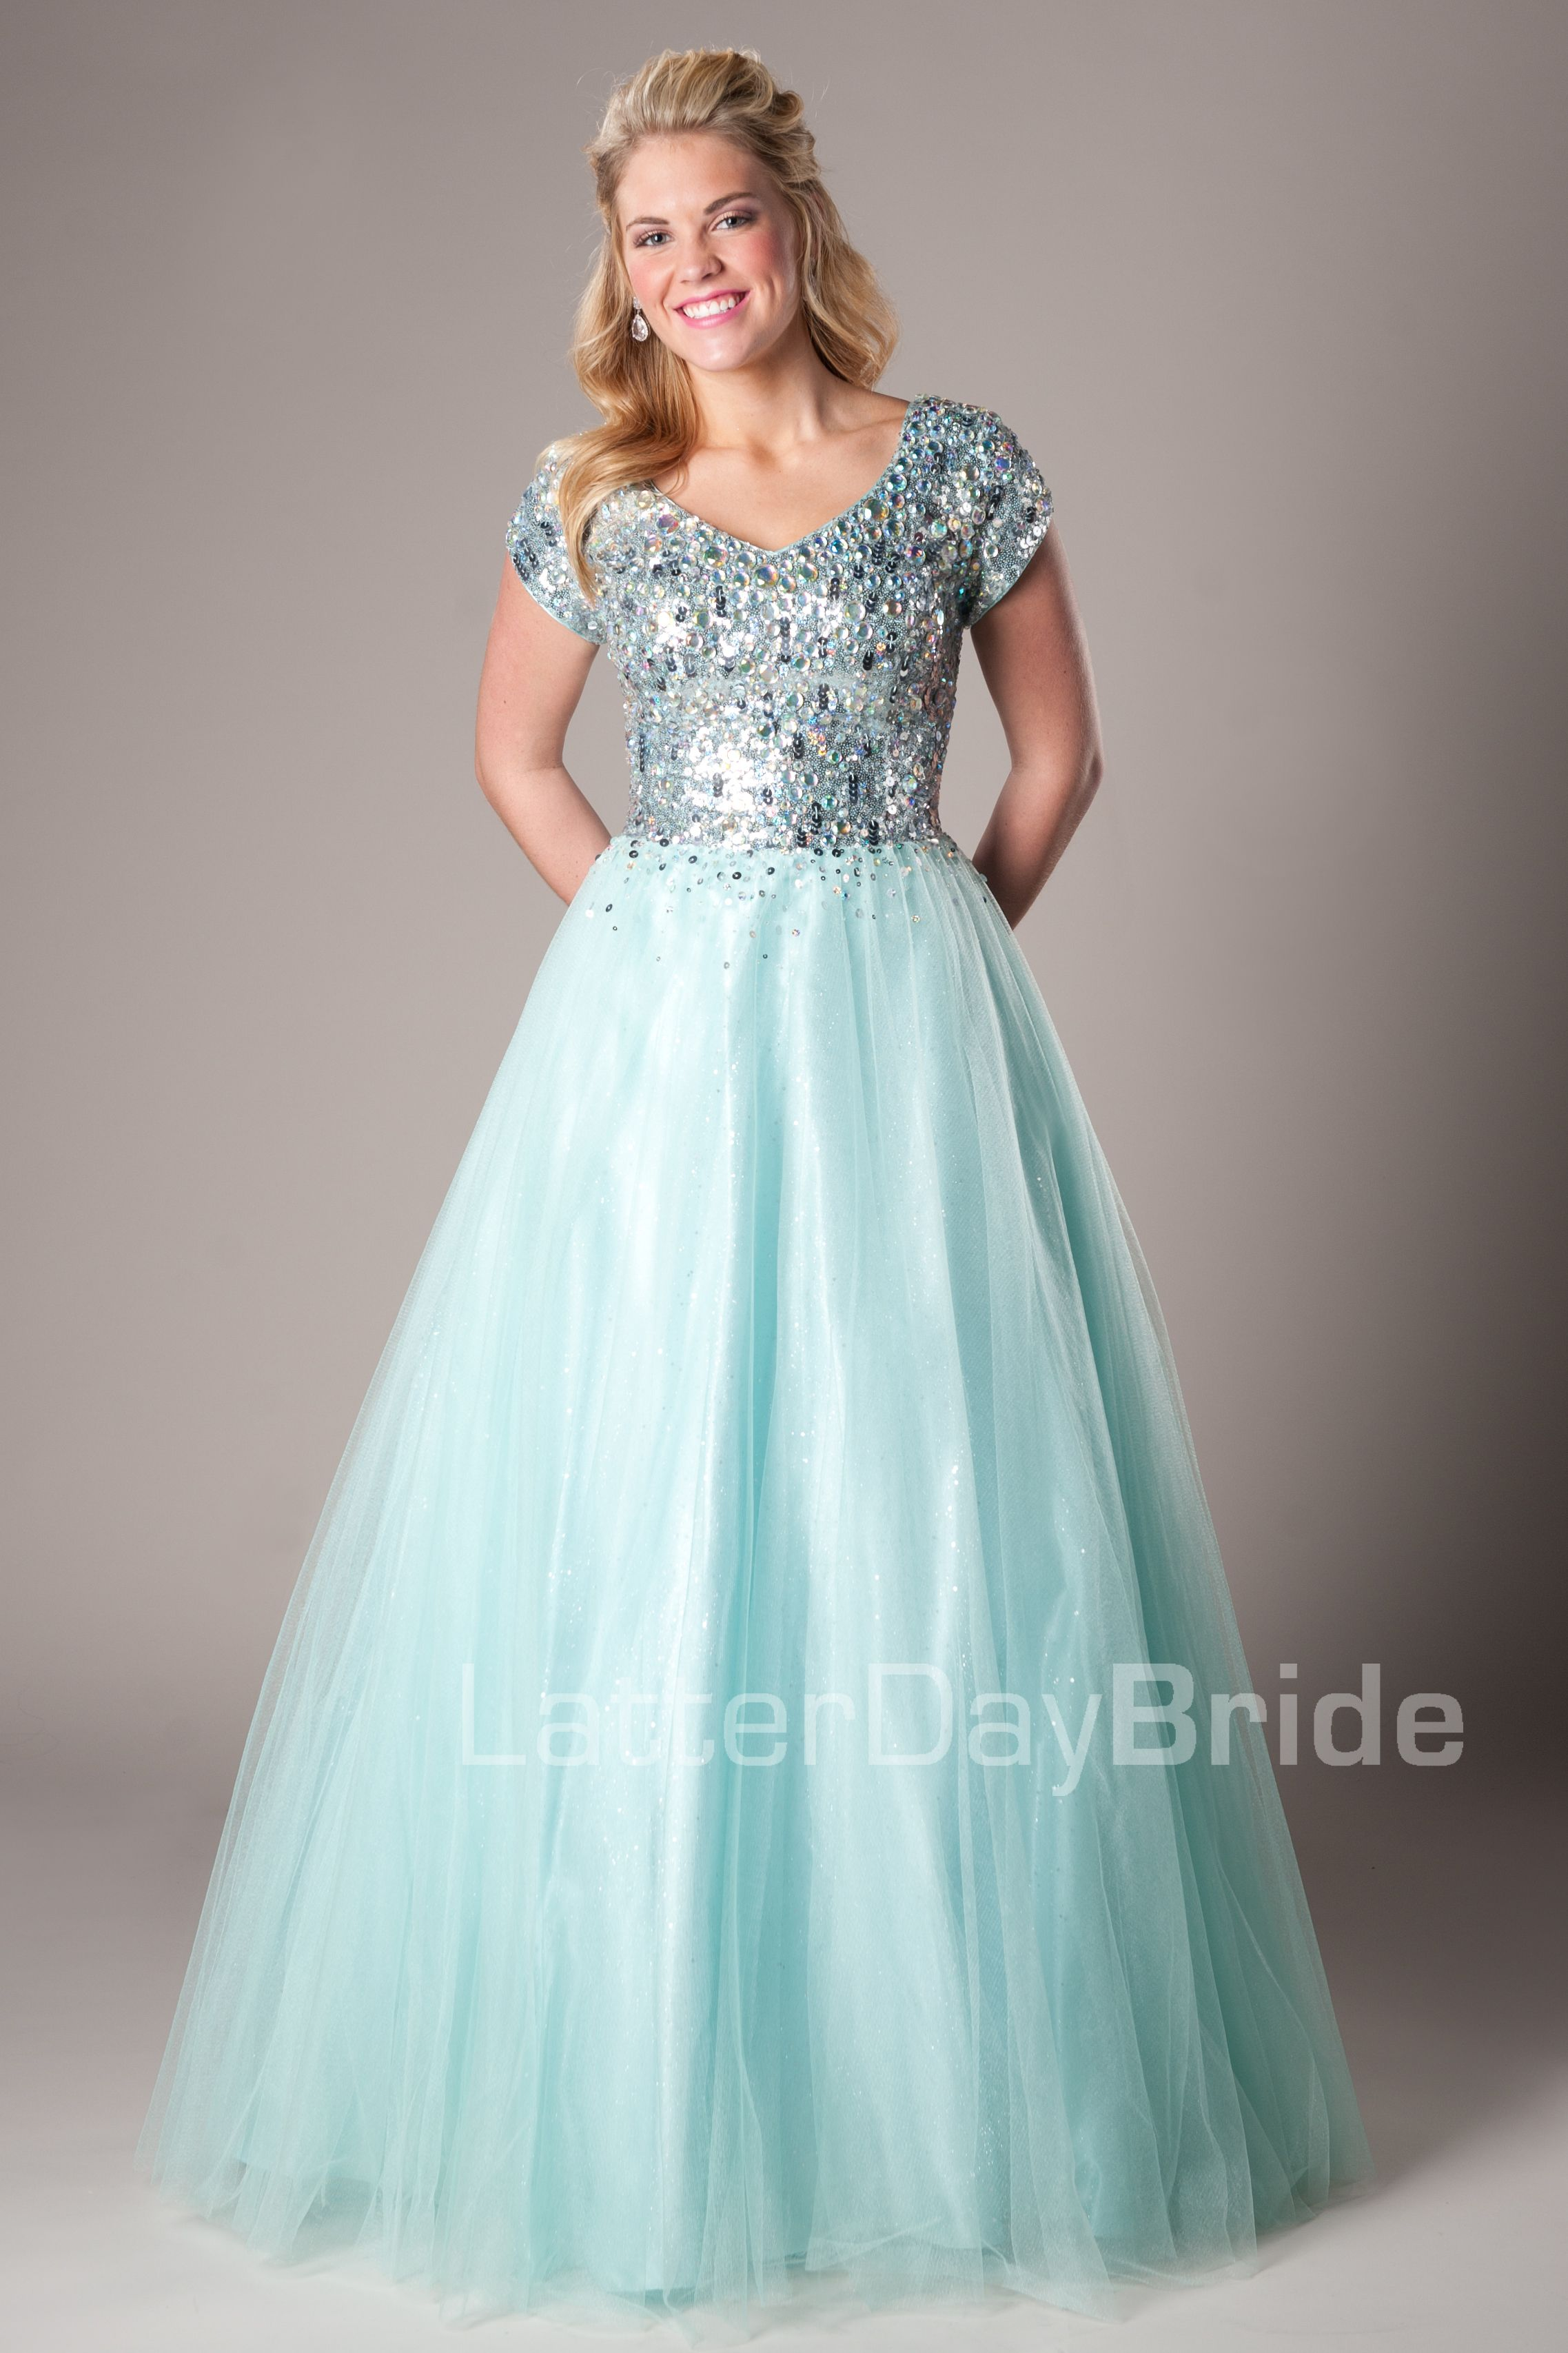 Hailey -Modest Mormon LDS Prom Dress | Modest Prom Dresses ...